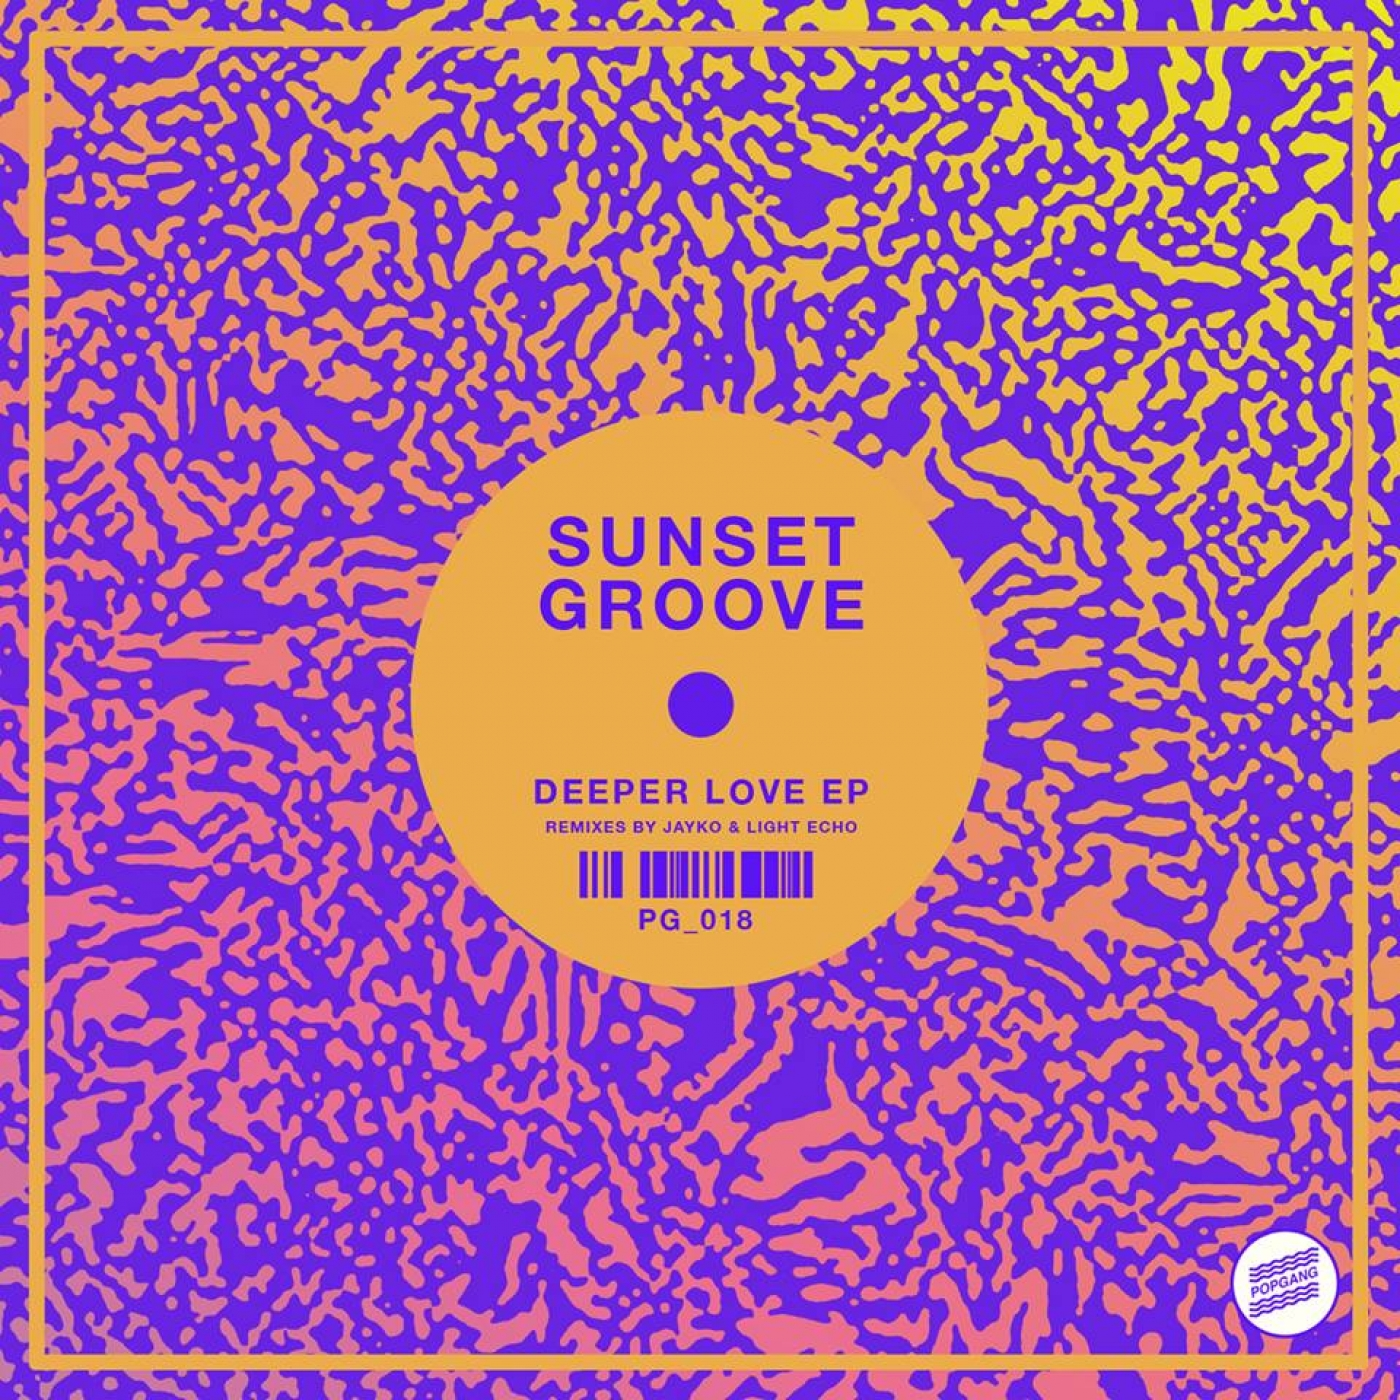 Sunset Groove - Deeper Love EP